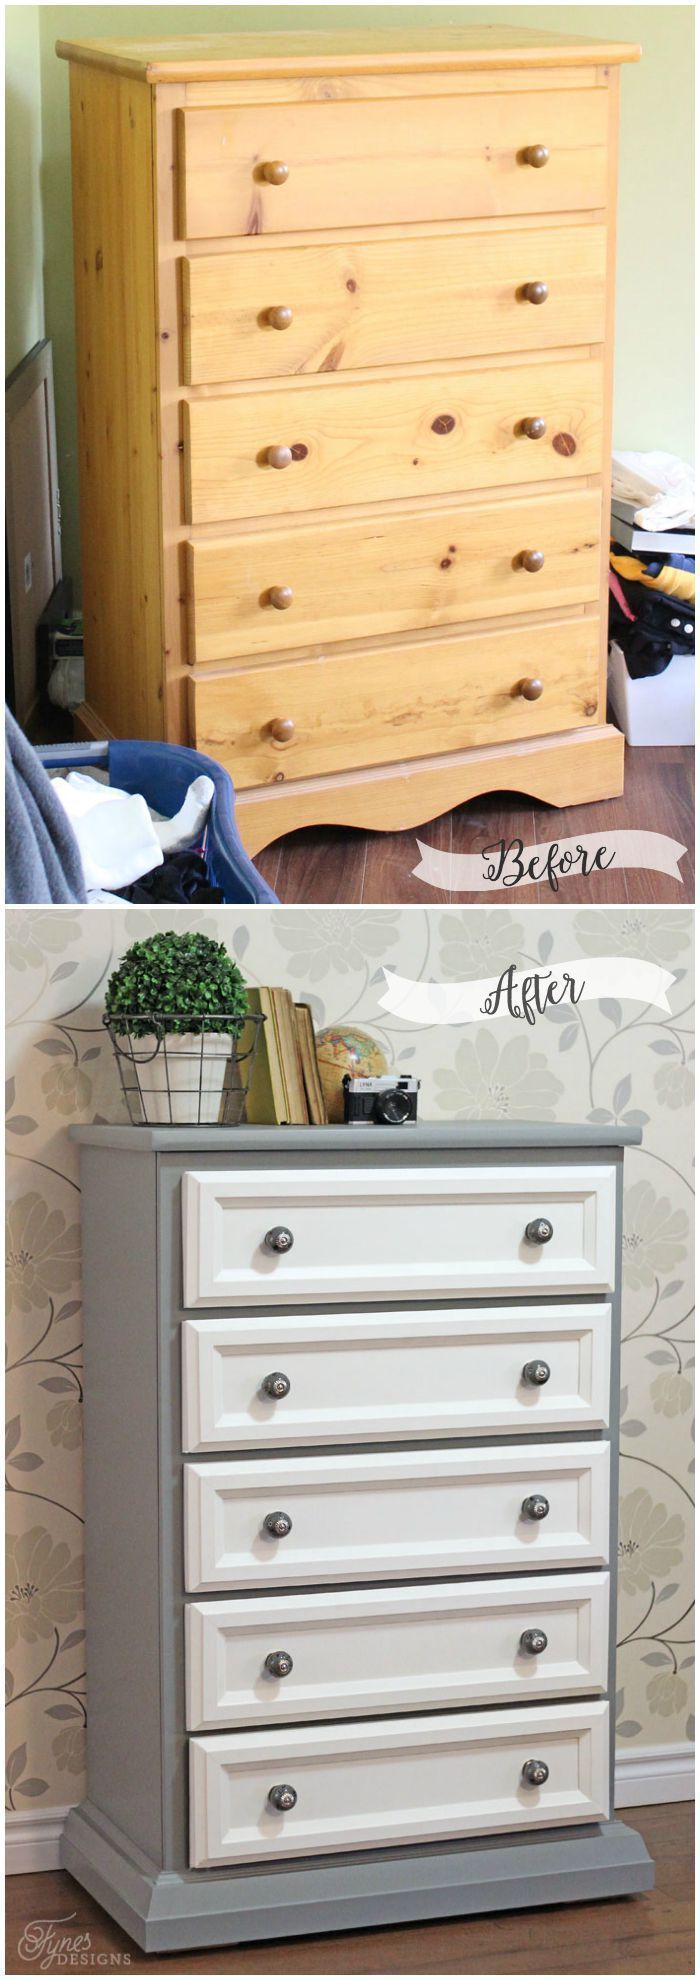 1000 Images About Before And After Painted Furniture On